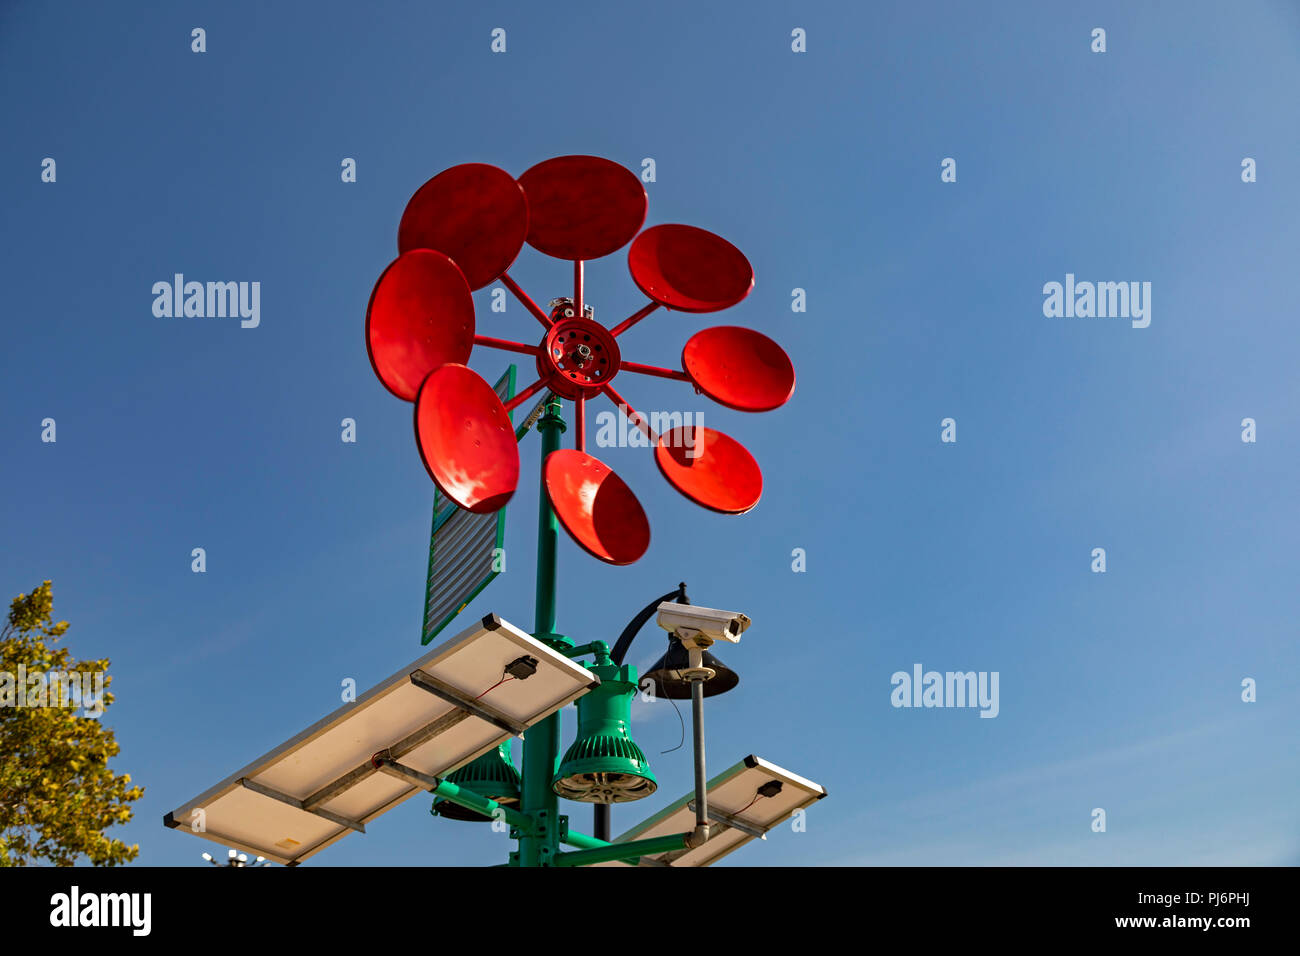 Detroit, Michigan - An artistic windmill at Eastern Market that will generate electricity to power a recharging station for electronic devices. It was - Stock Image